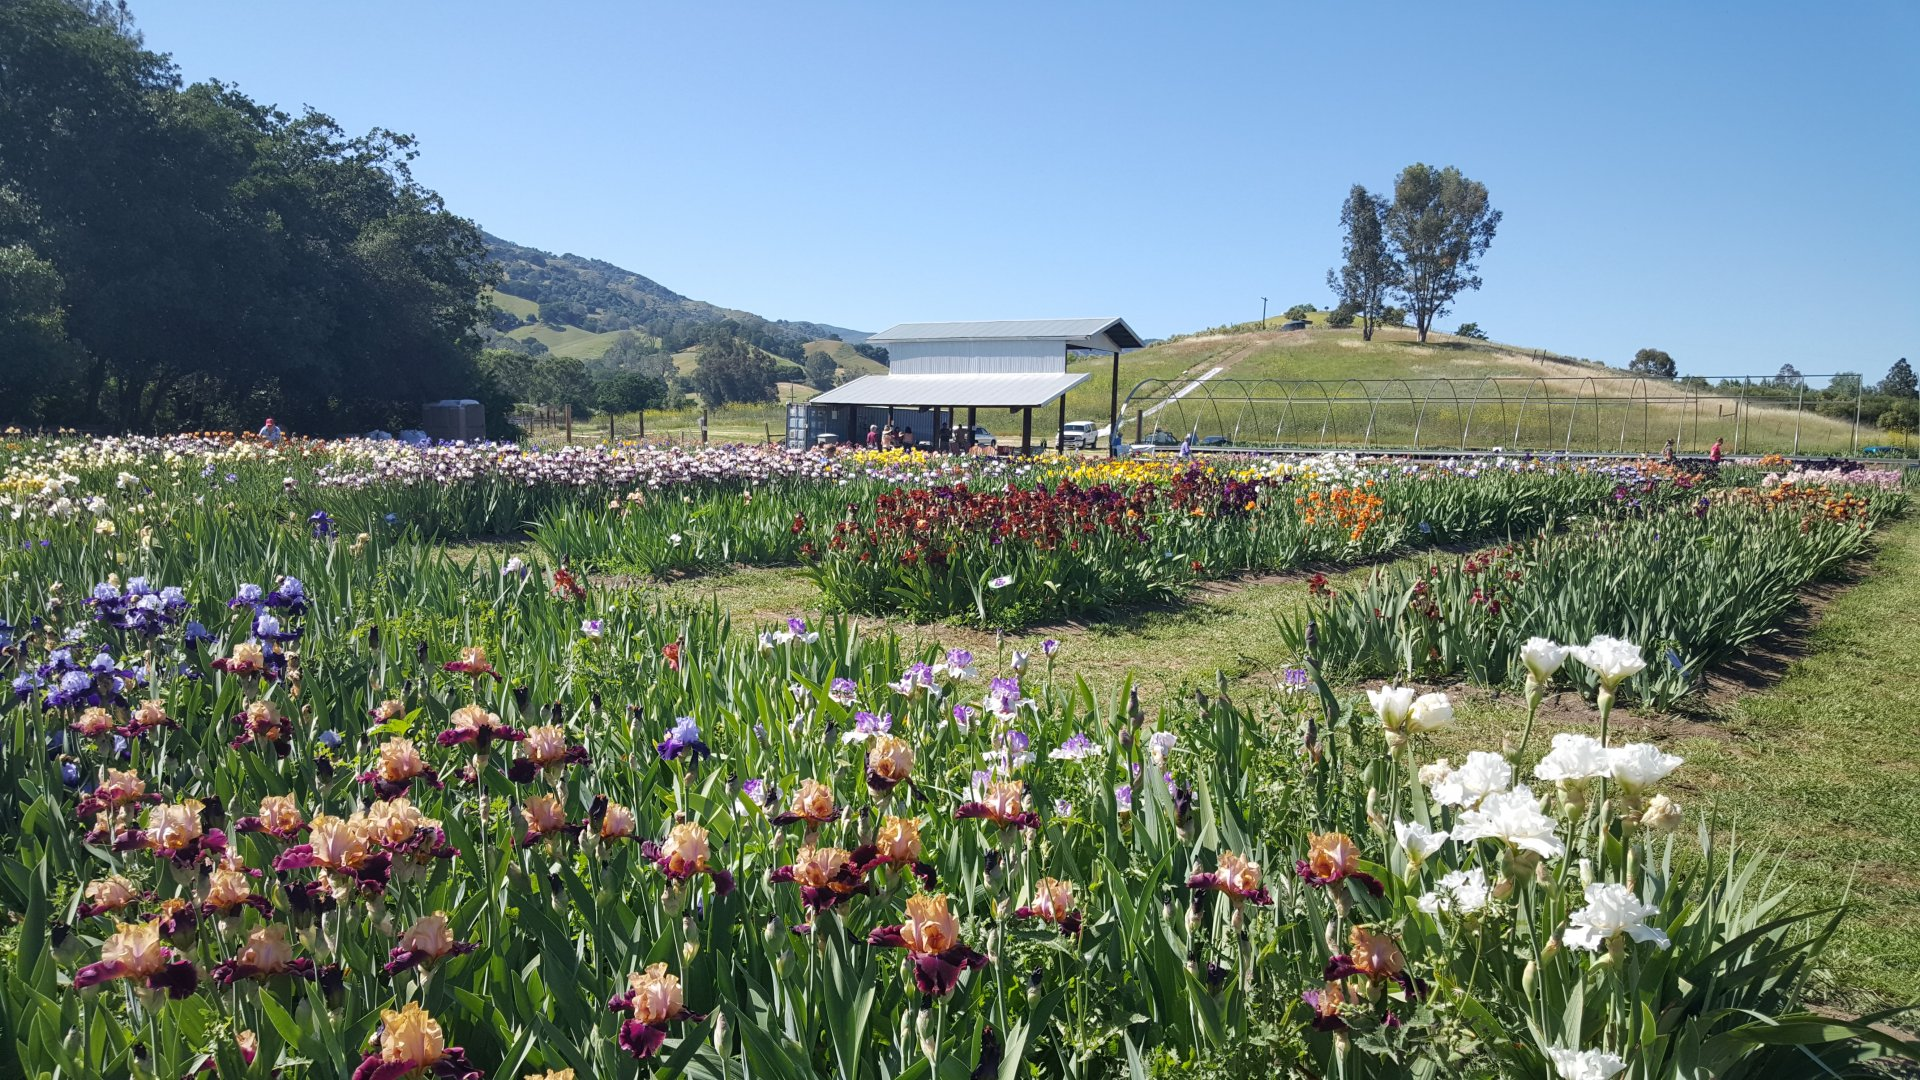 Discover the home-grown side of Solano County and explore local farms, produce stands, and farmers markets.